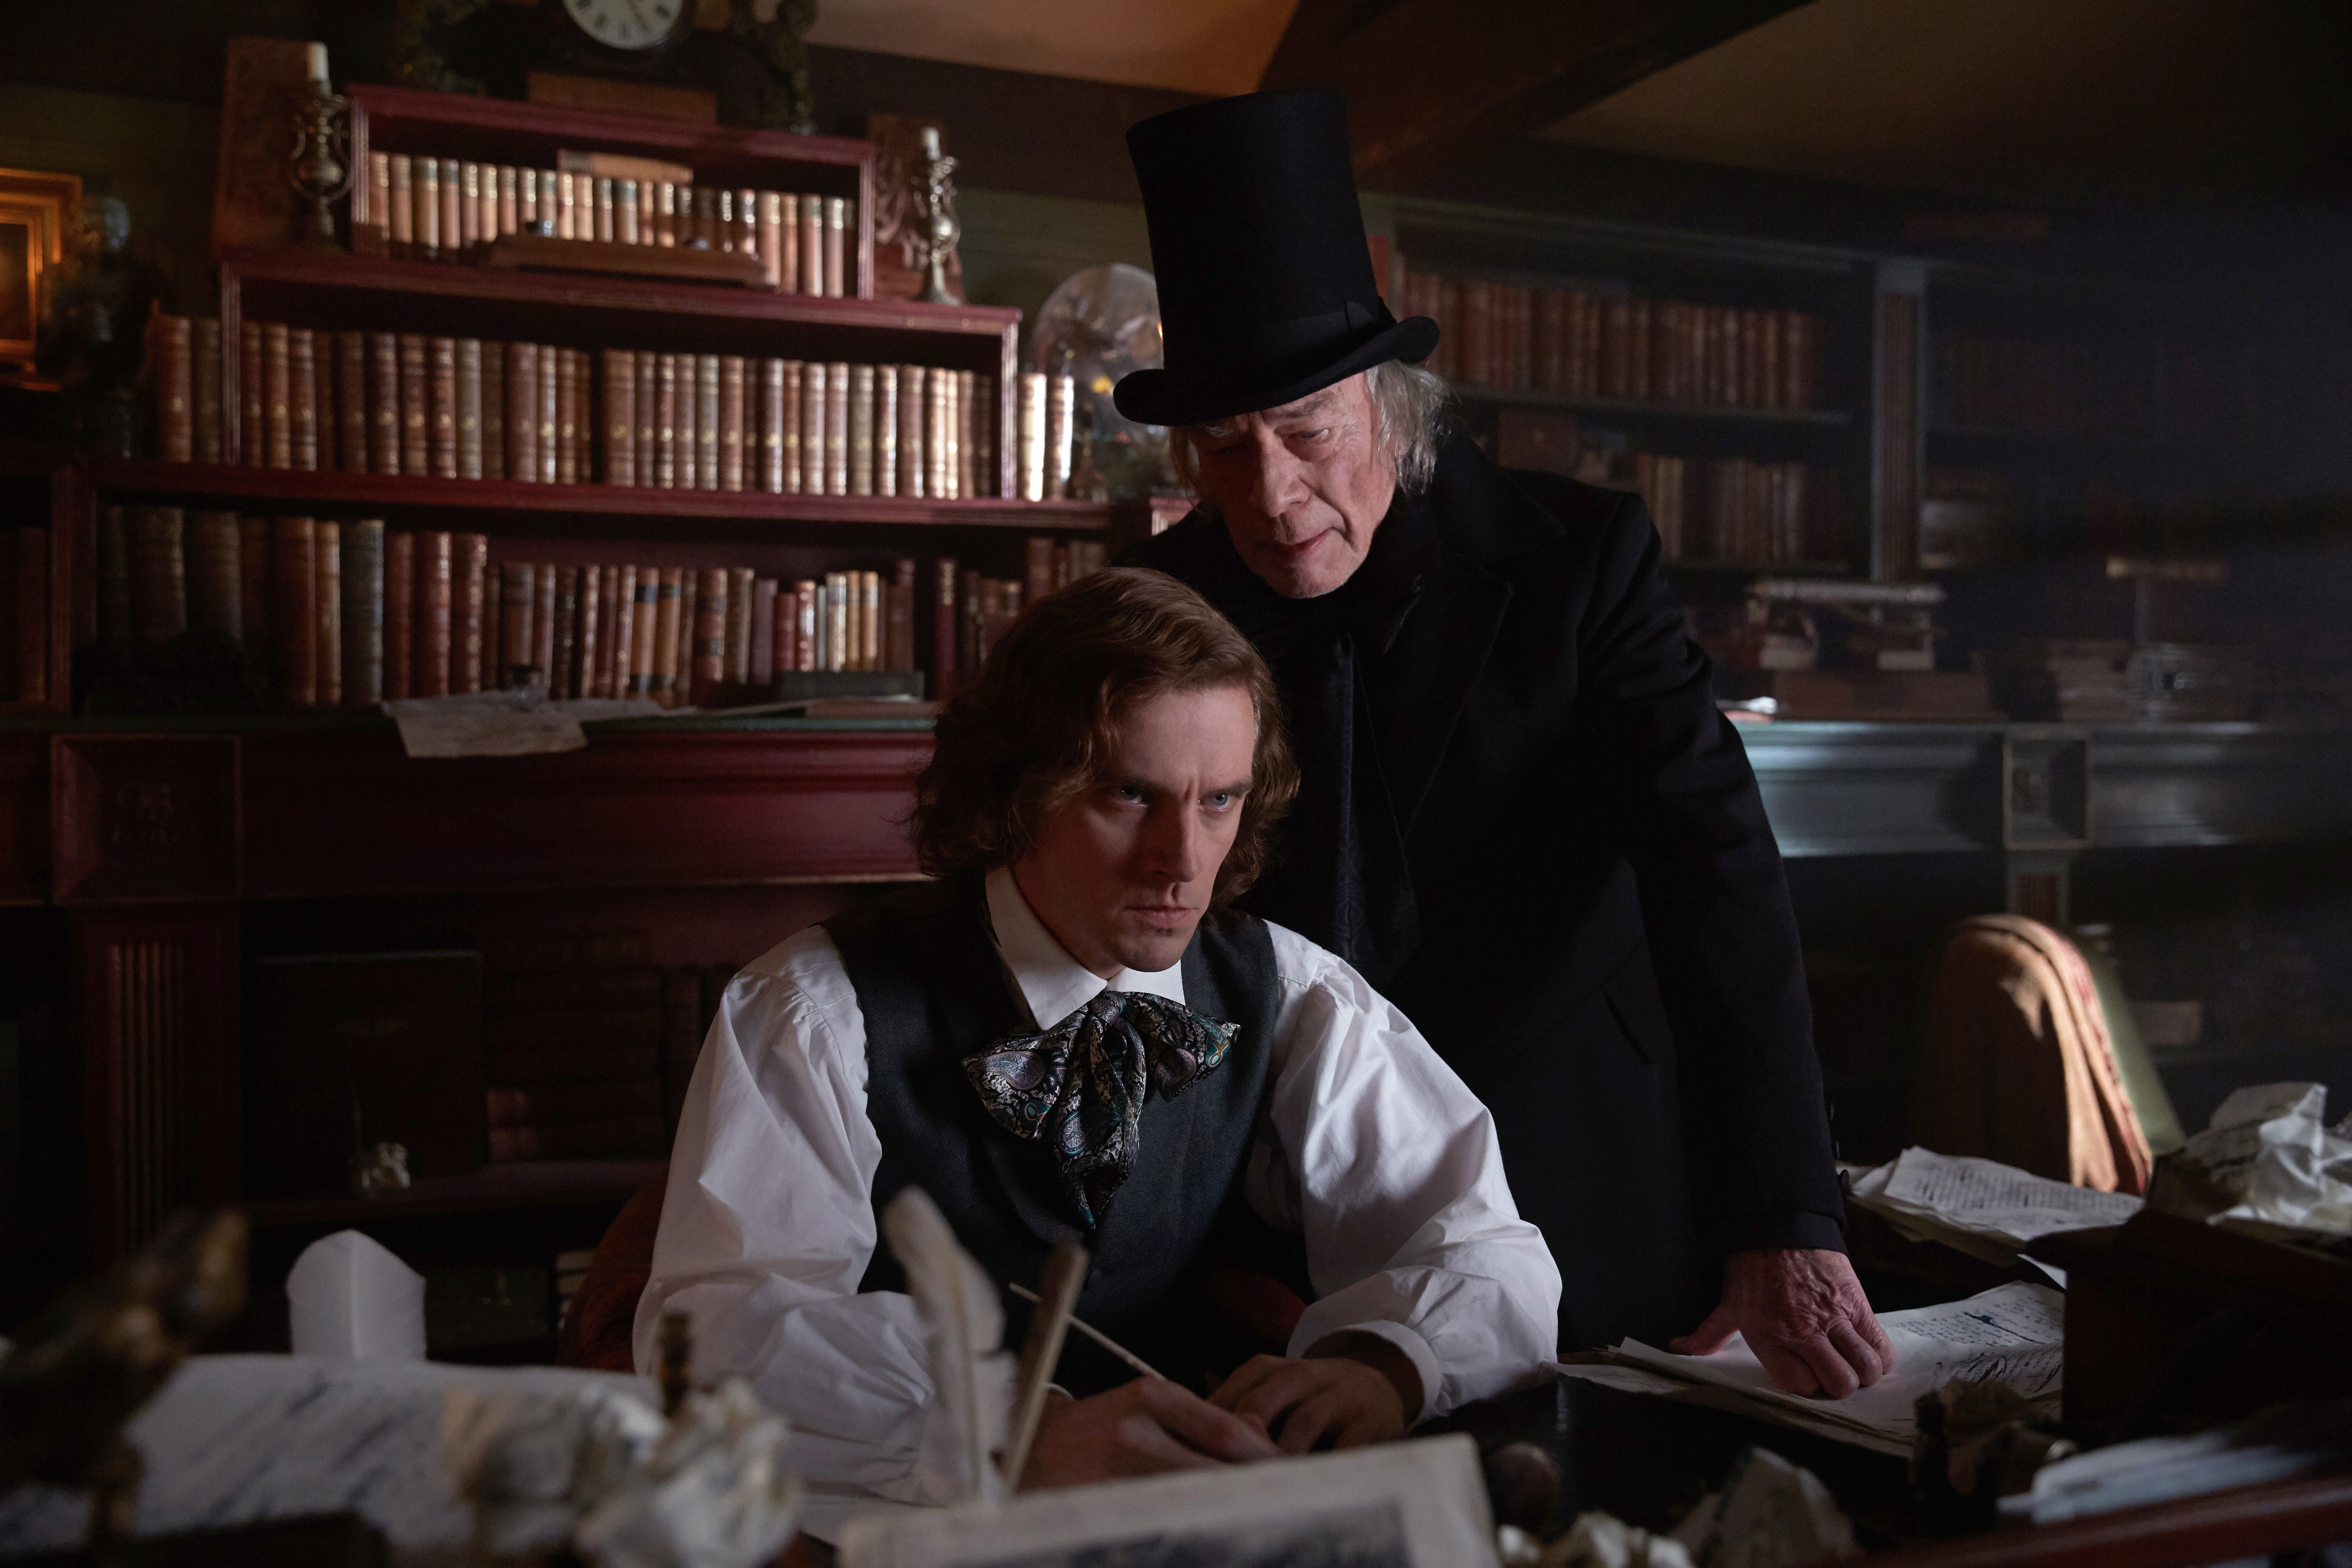 """Characters come alive to help Charles Dickens write his immortal classic """"A Christmas Carol"""" in The Man Who Invented Christmas."""